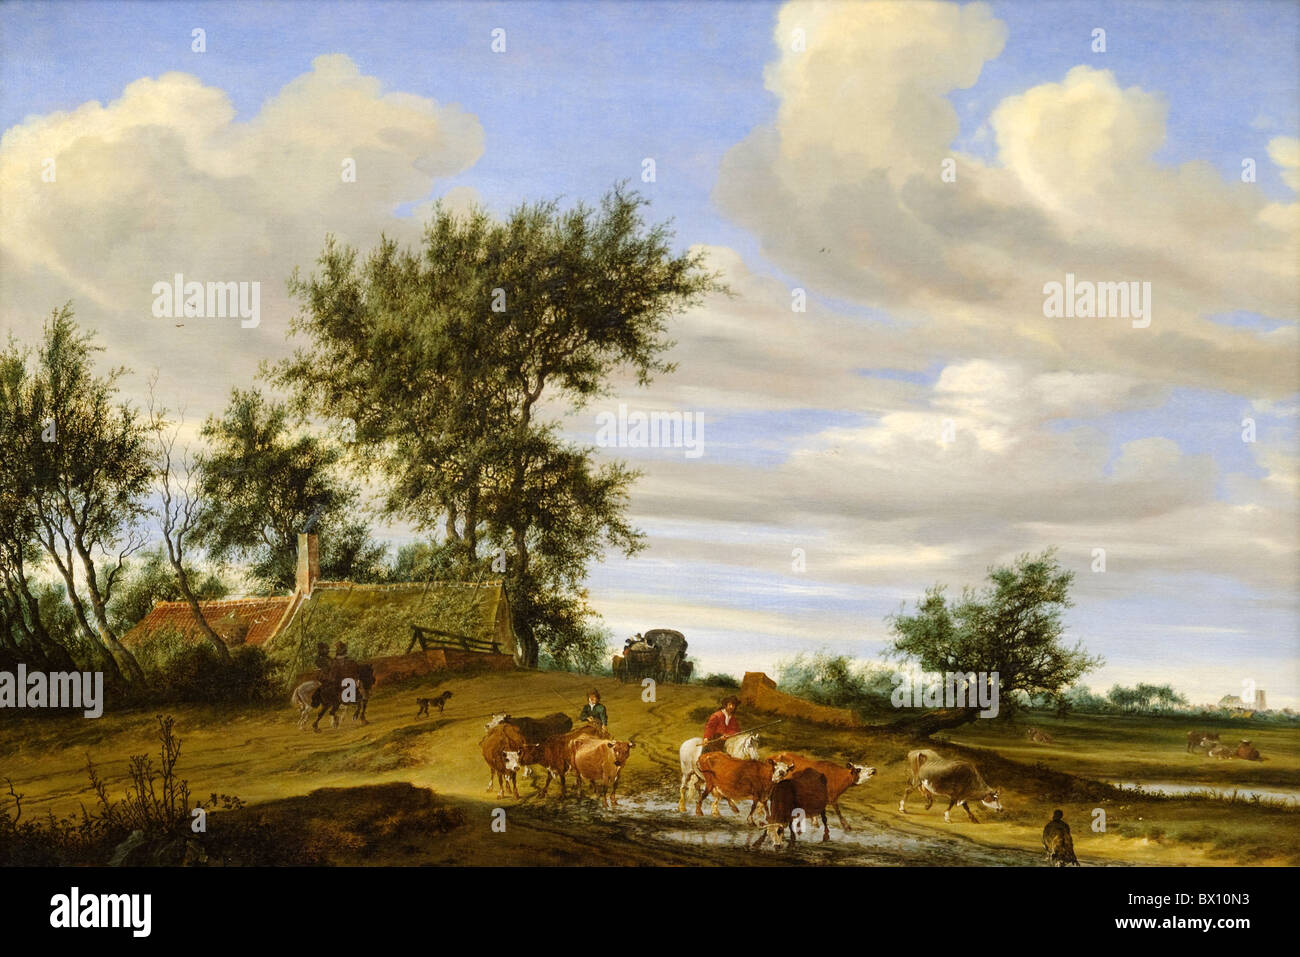 A Country Road, 1648, by Salomon van Ruysdael Stock Photo